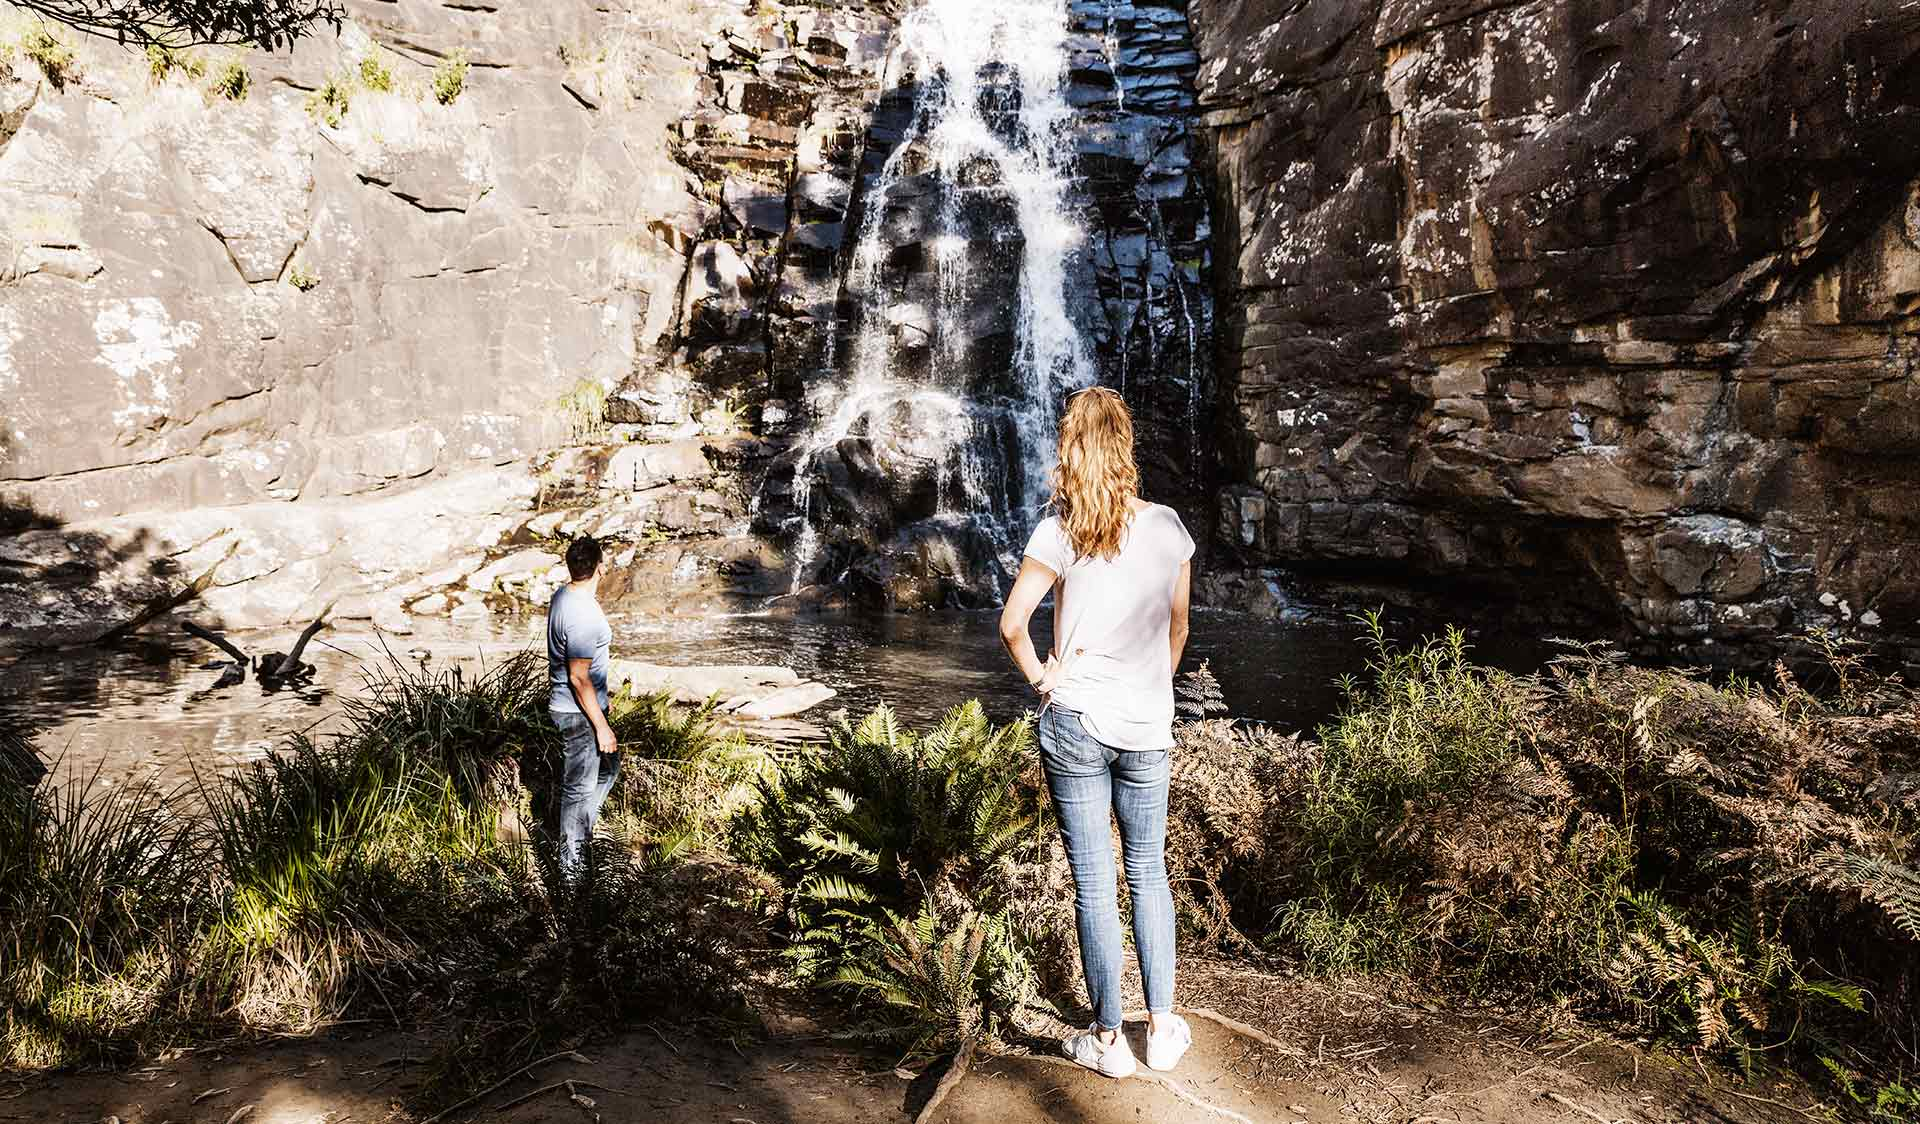 A couple stand and admire Sheoak Falls near Lorne in the Great Otway National Park.